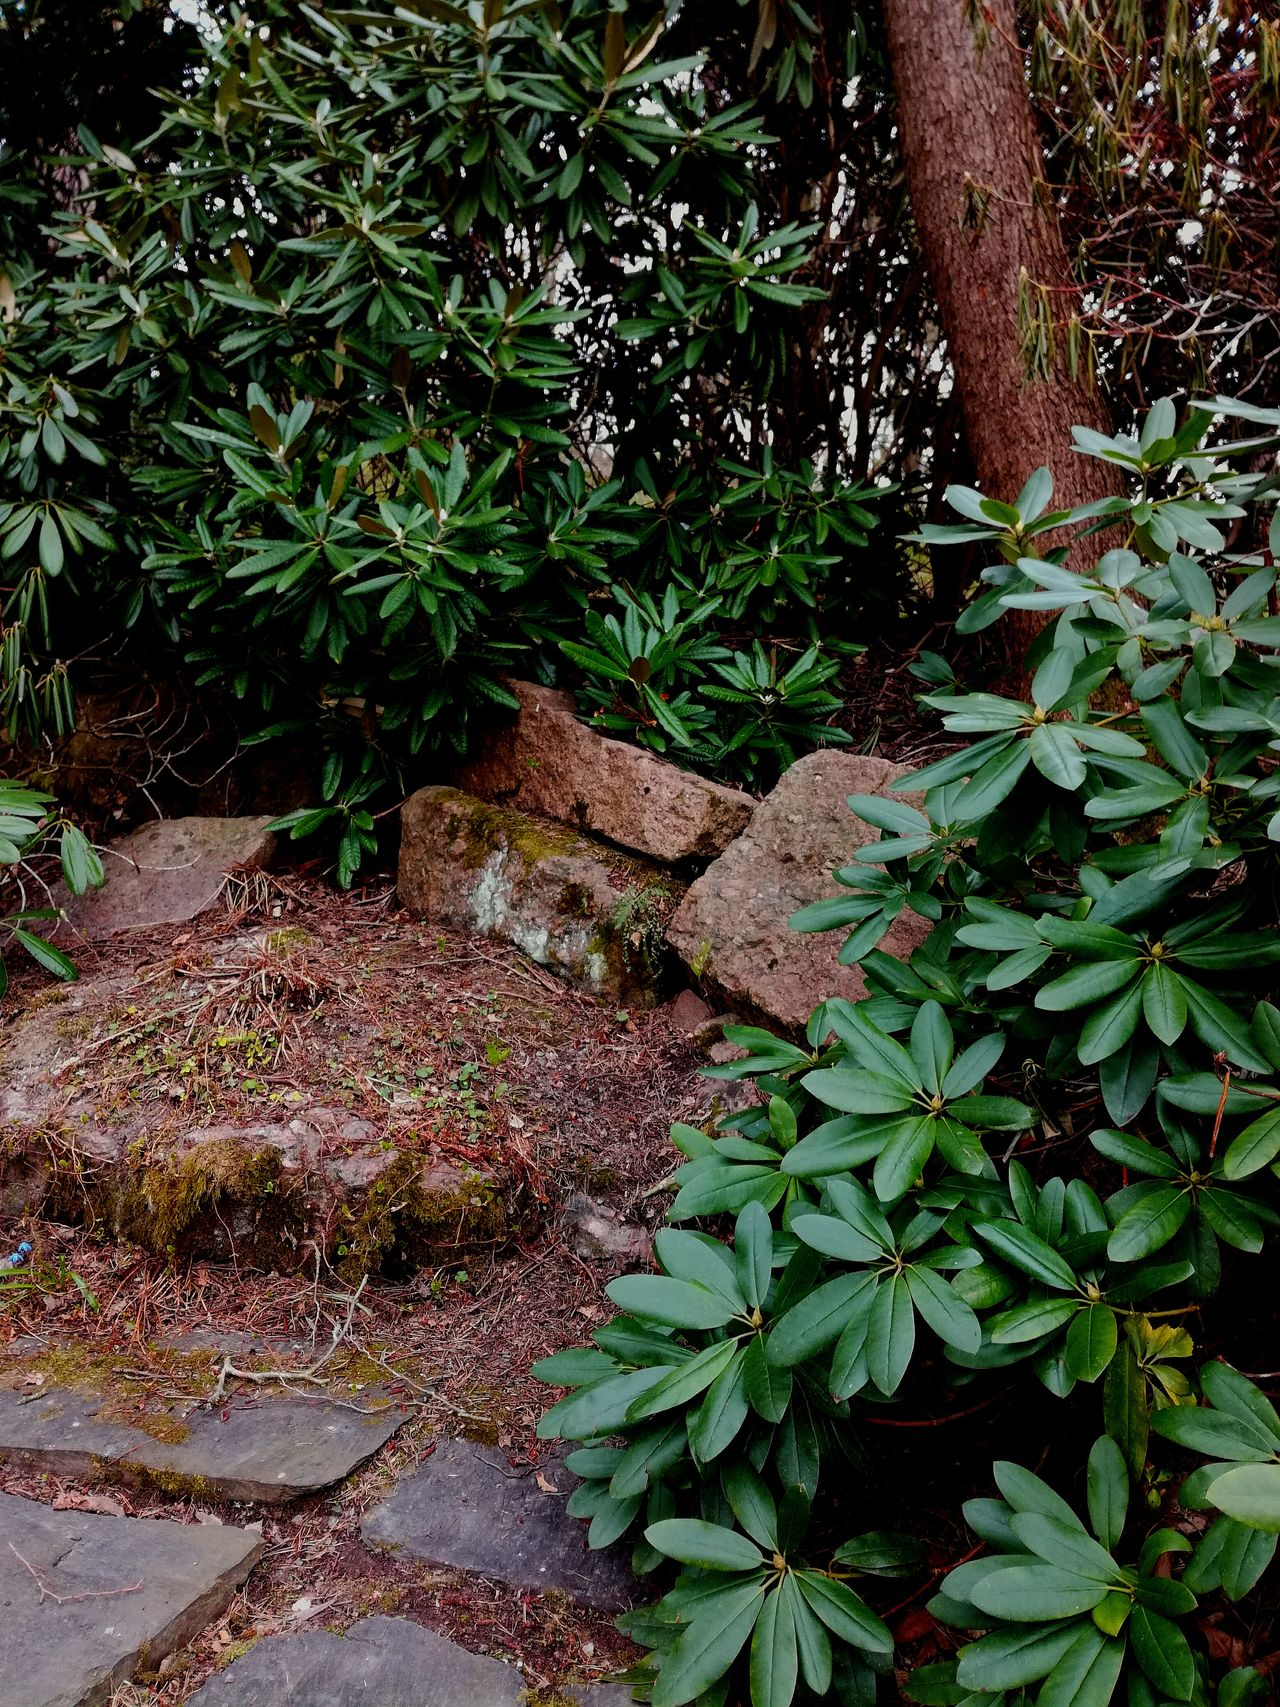 Nature Tree Outdoors Green Color Leaf Beauty In Nature No People Plant Close-up Finland Springtime Outdoors Photograpghy  Mossy Stone Rhododendron Stones Park Japanese Style